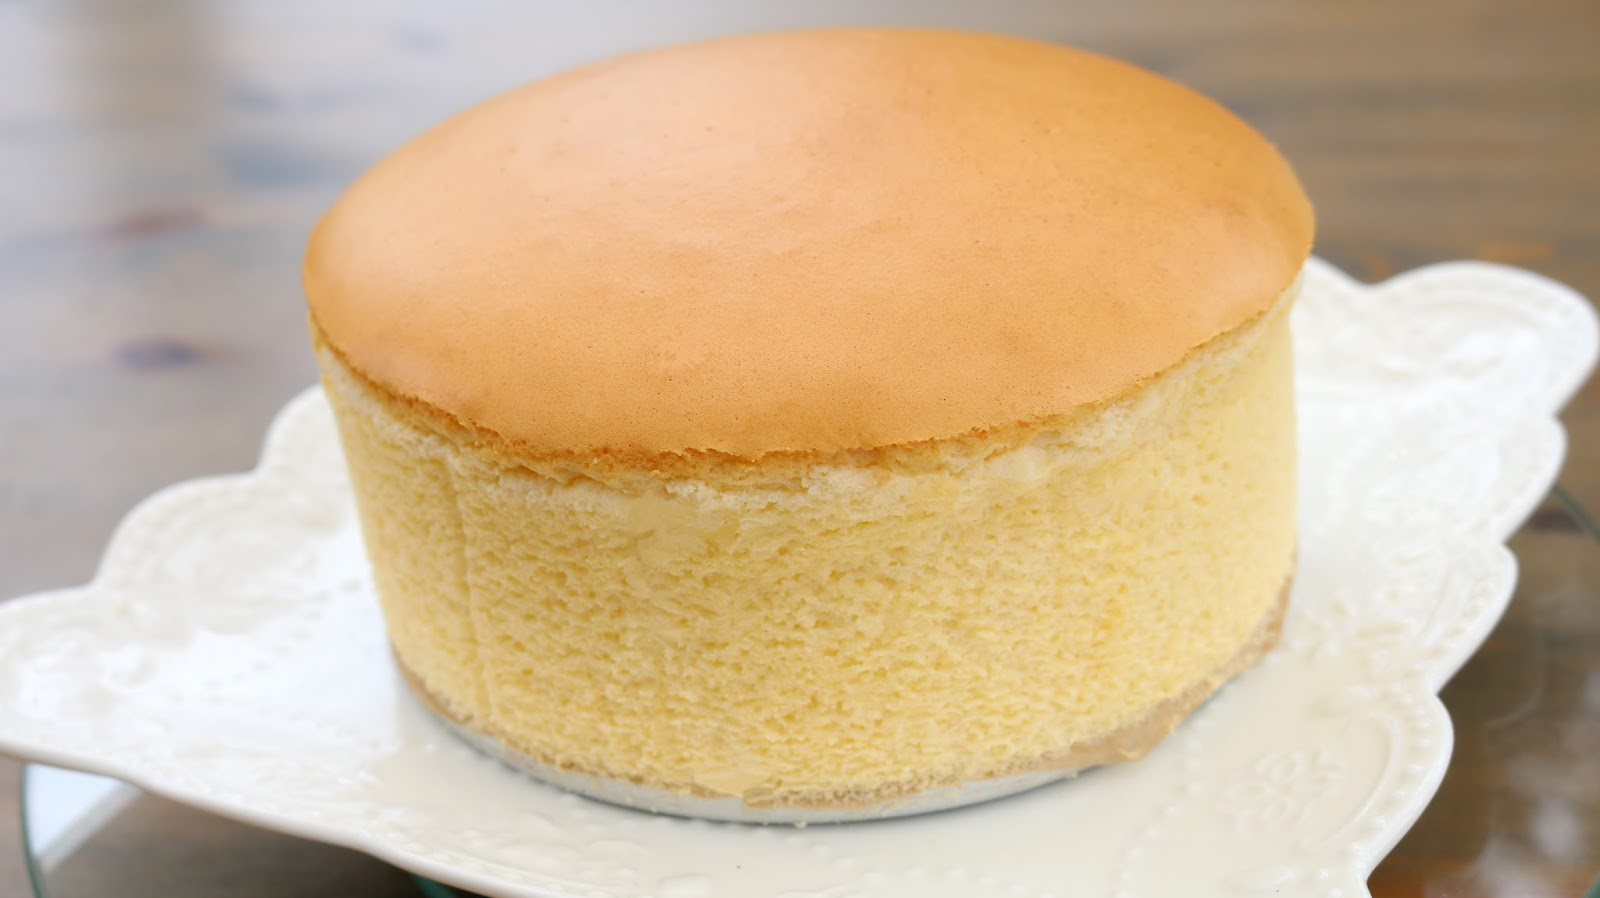 Japanese Cooking Egg Cake Recipe